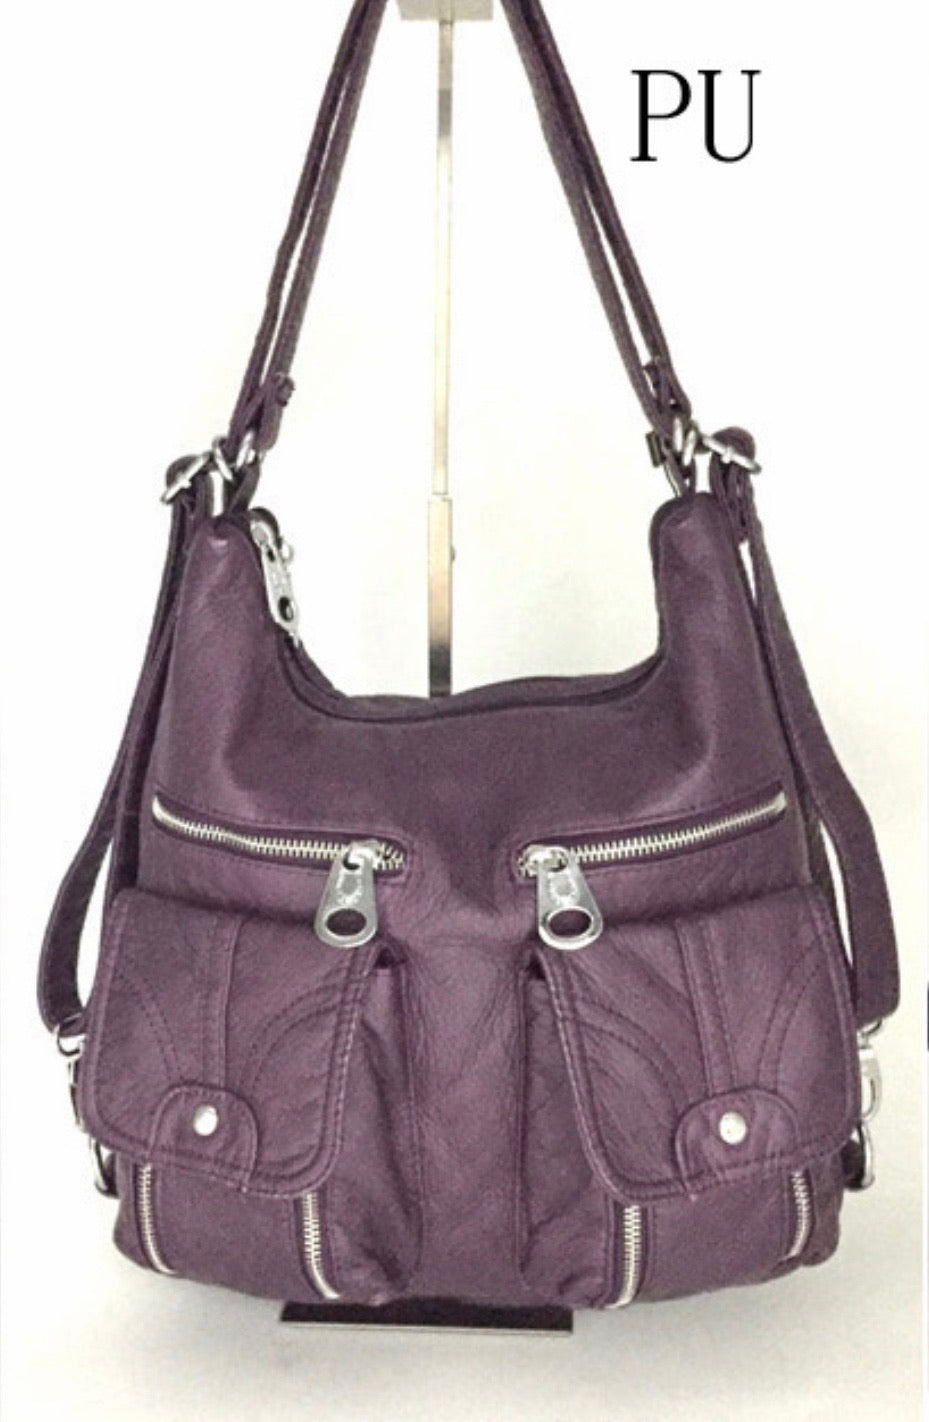 Purple 3 in 1 with 2 front snaps and 2 zippers